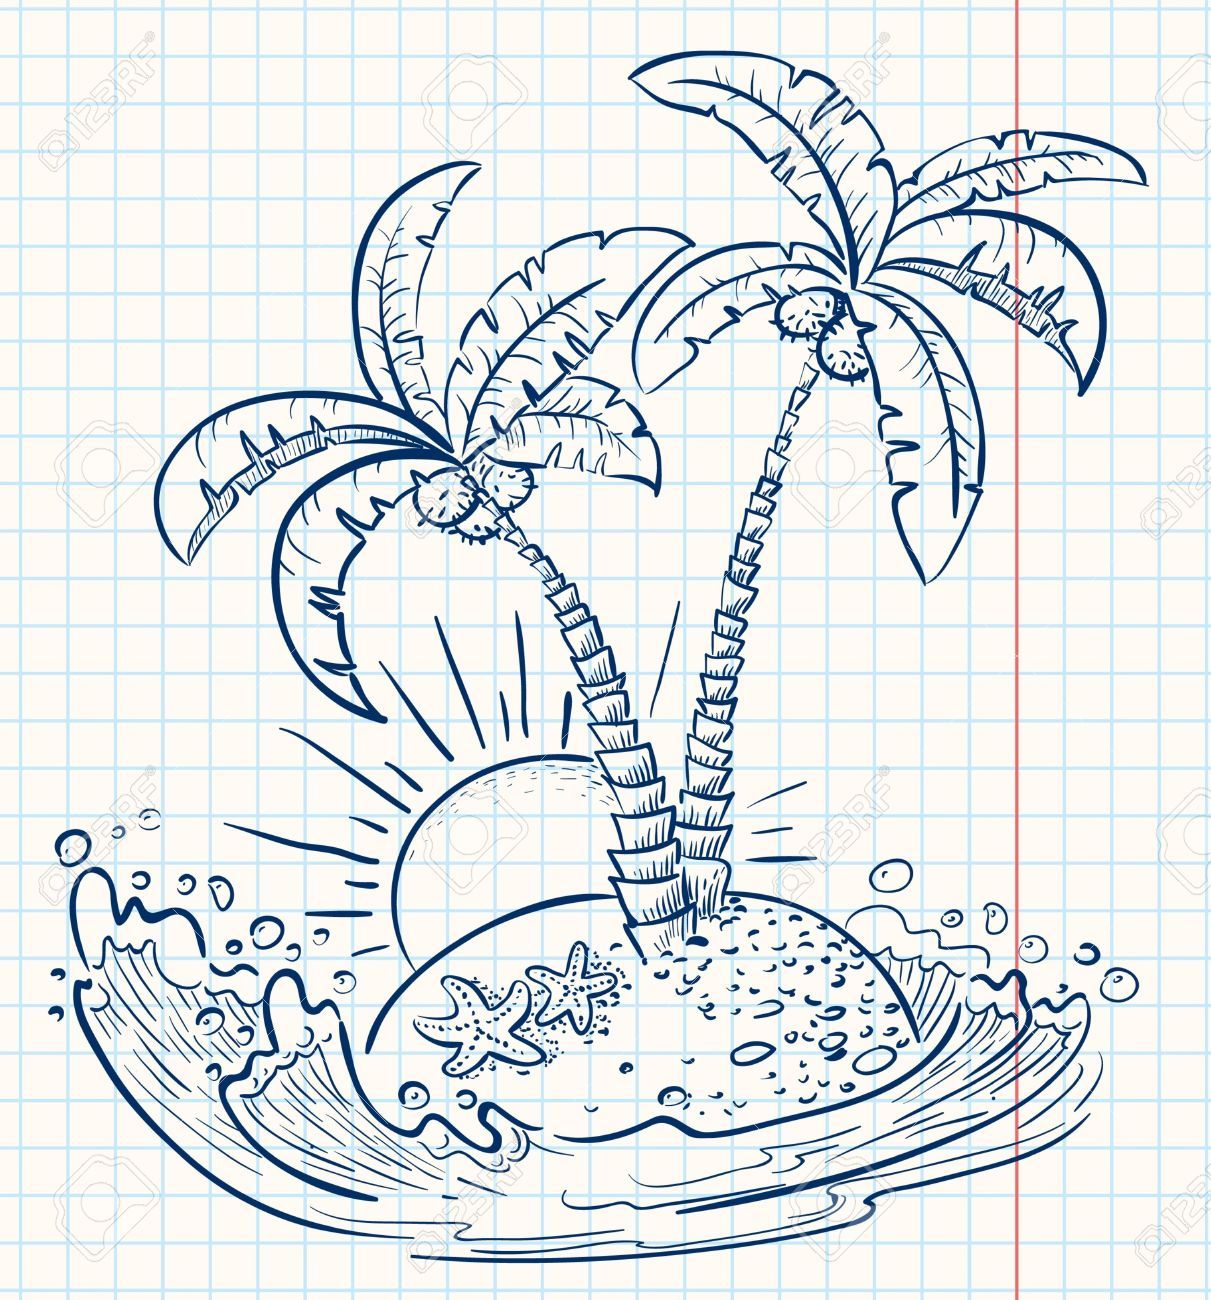 9455693 tropical cute island doodle version stock vector for Cute tree drawing